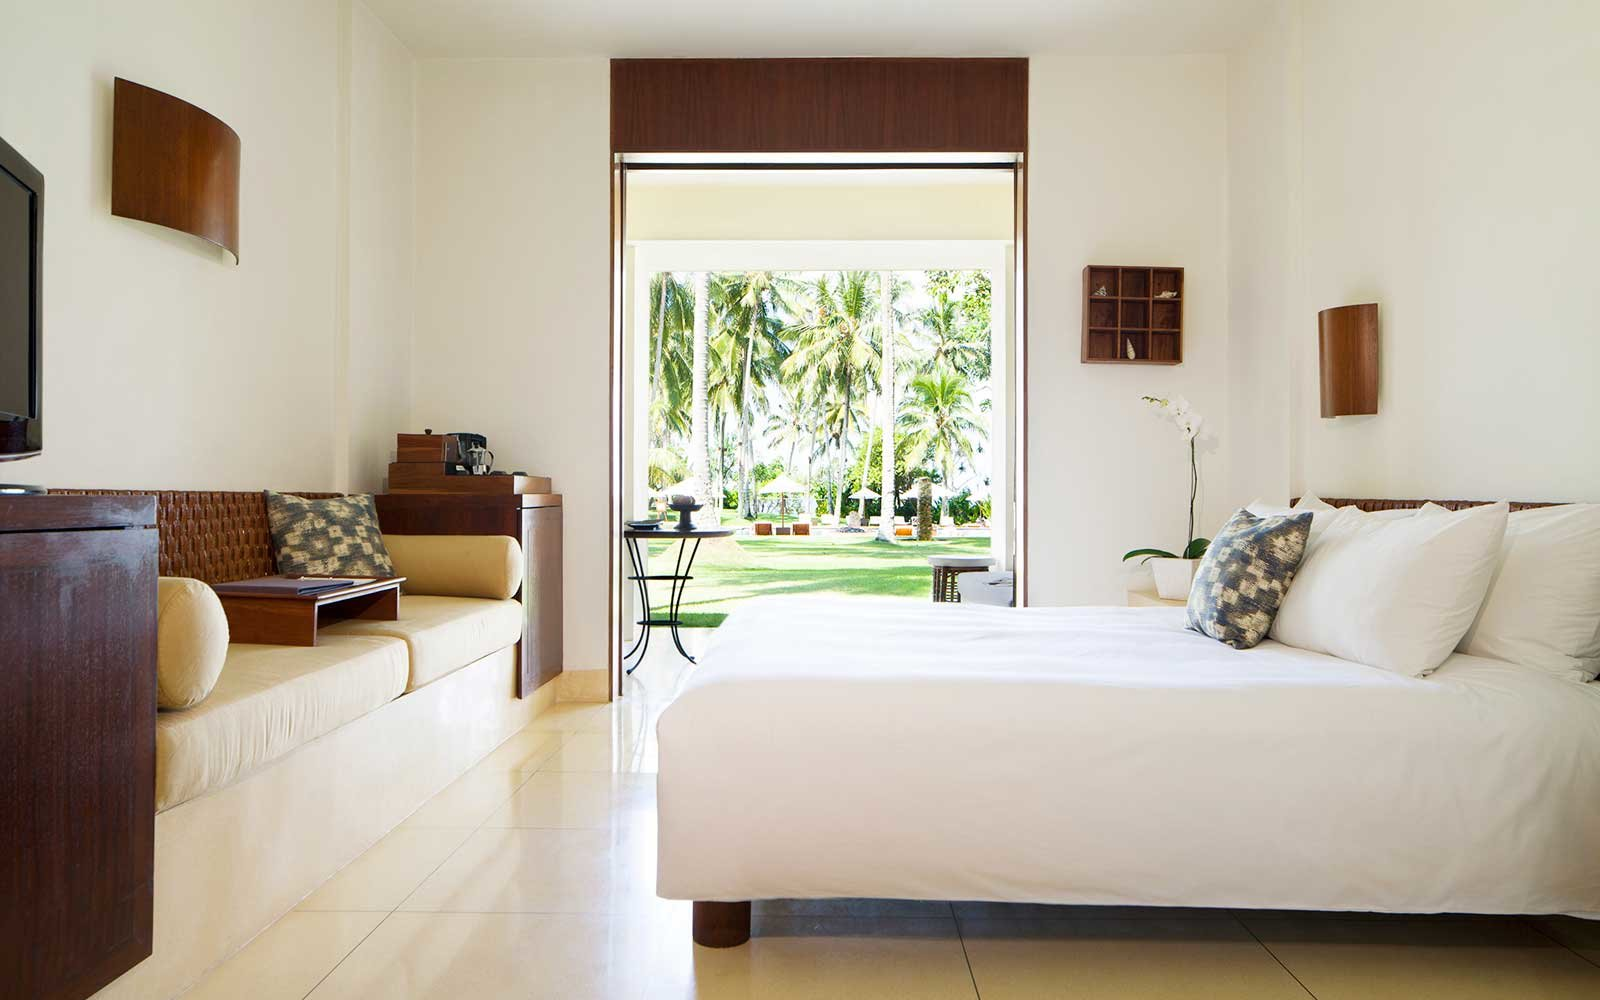 Guest room at the Alila Manggia